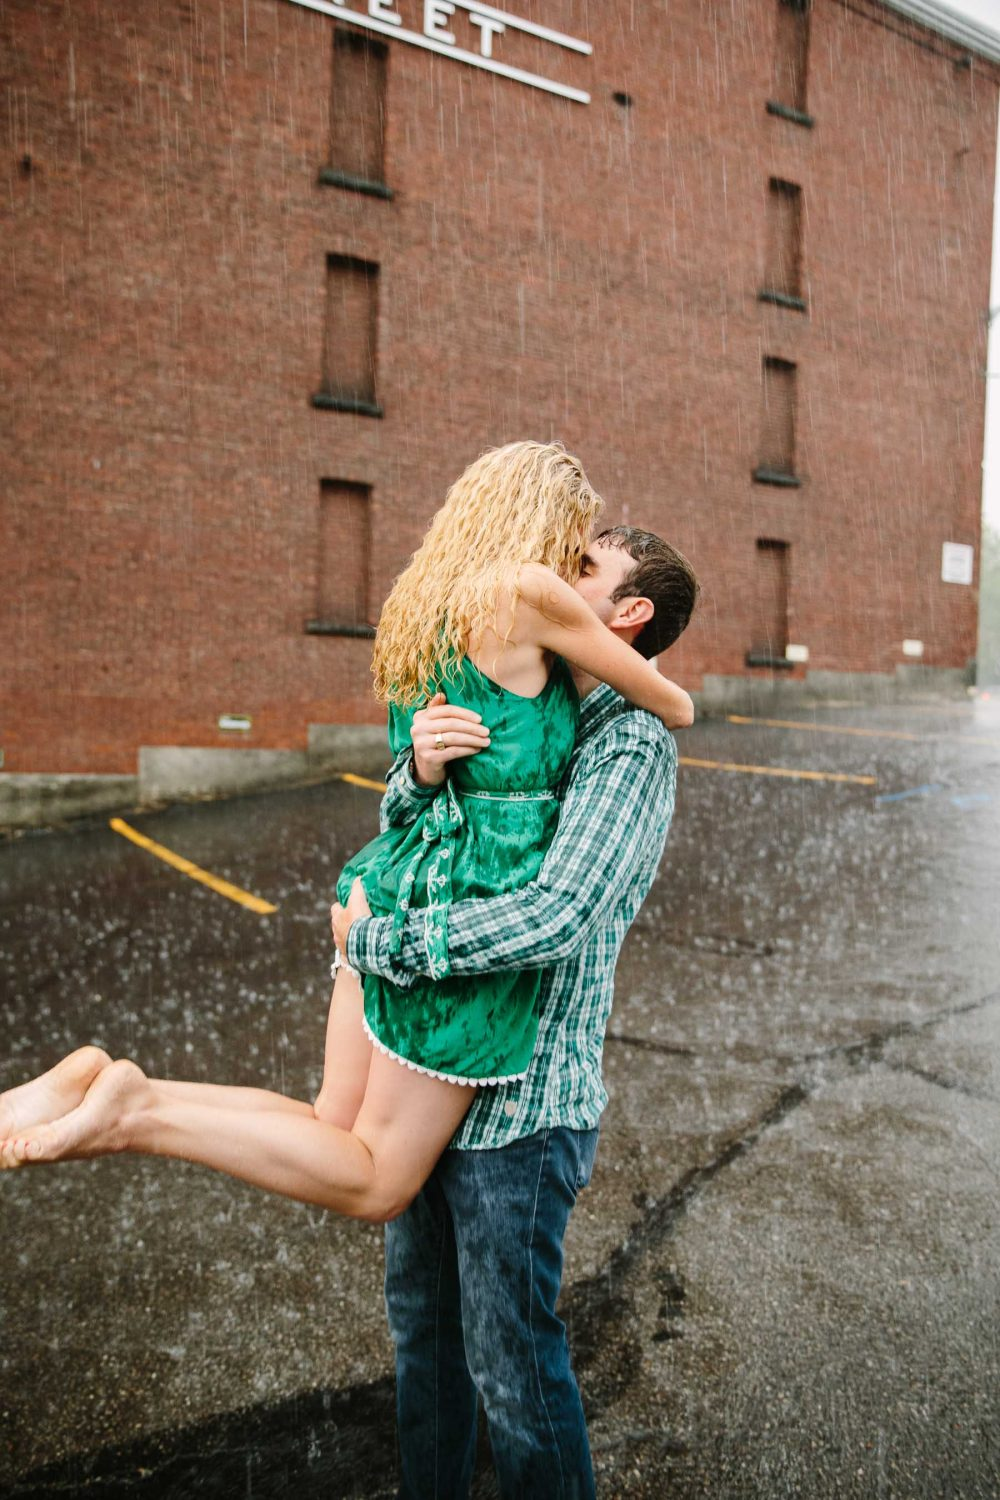 019-summer-manchester-nh-rain-engagement